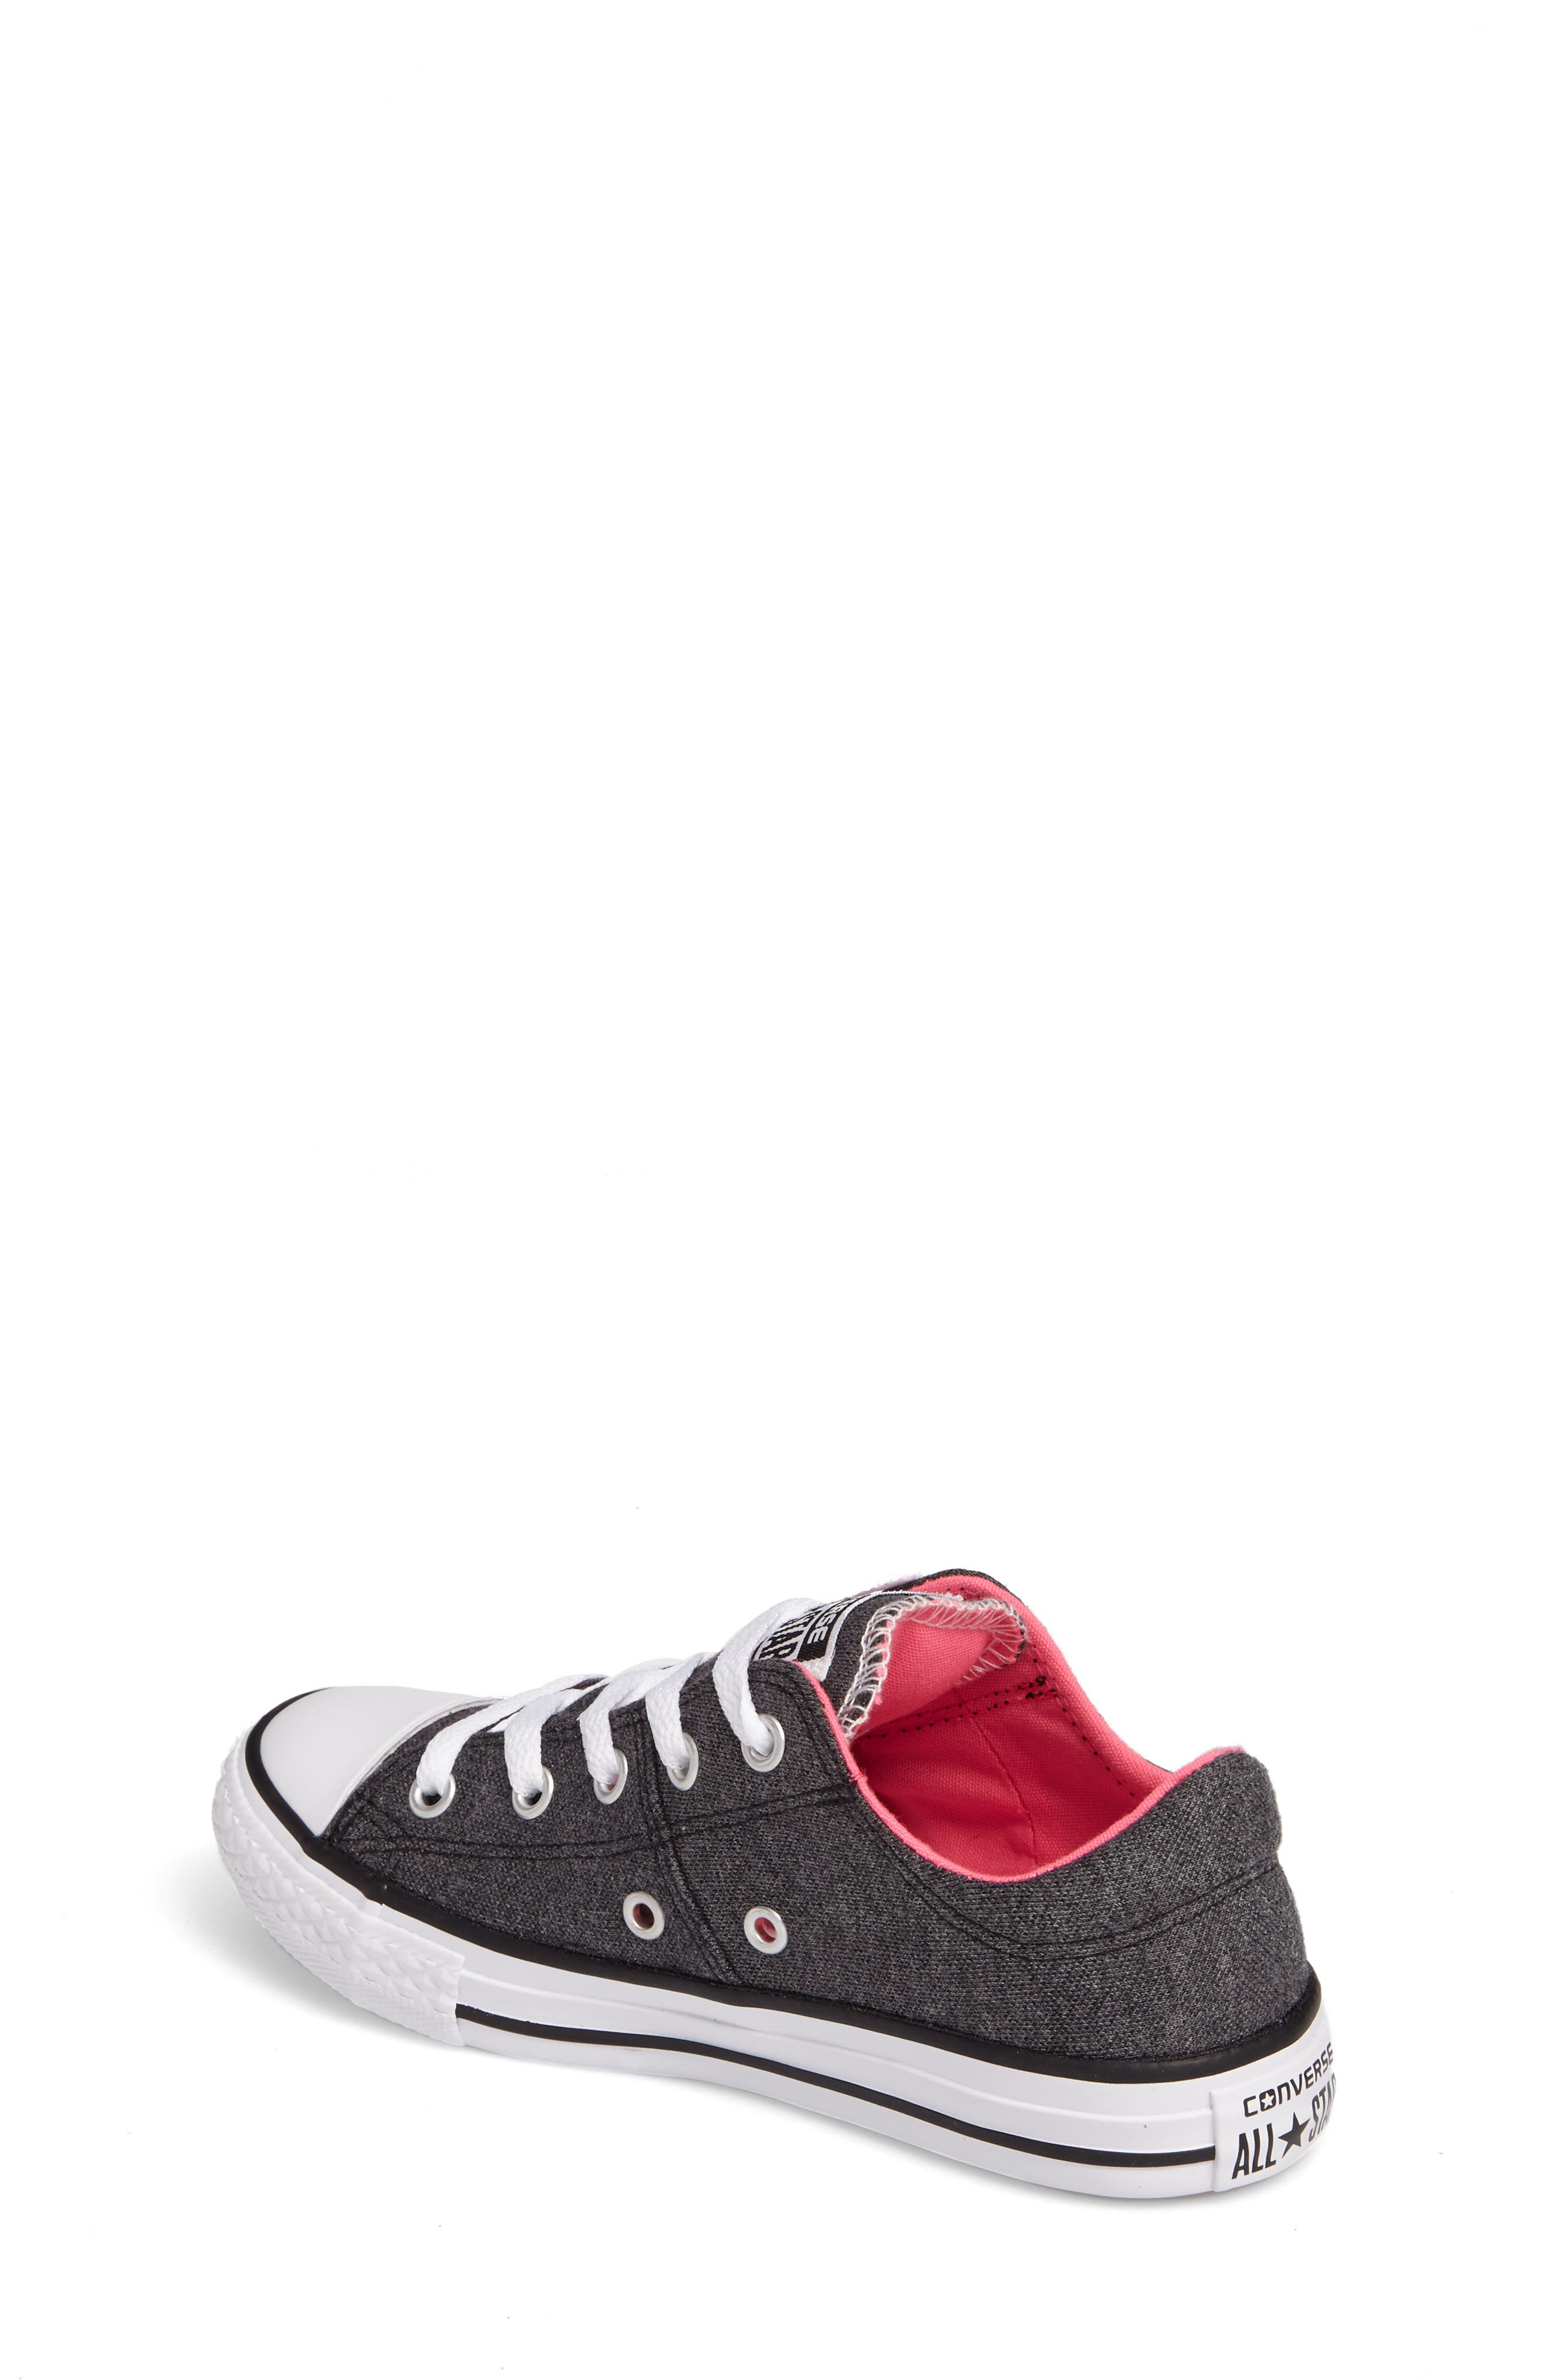 Chuck Taylor<sup>®</sup> All Star<sup>®</sup> Madison Low Top Sneaker,                             Alternate thumbnail 7, color,